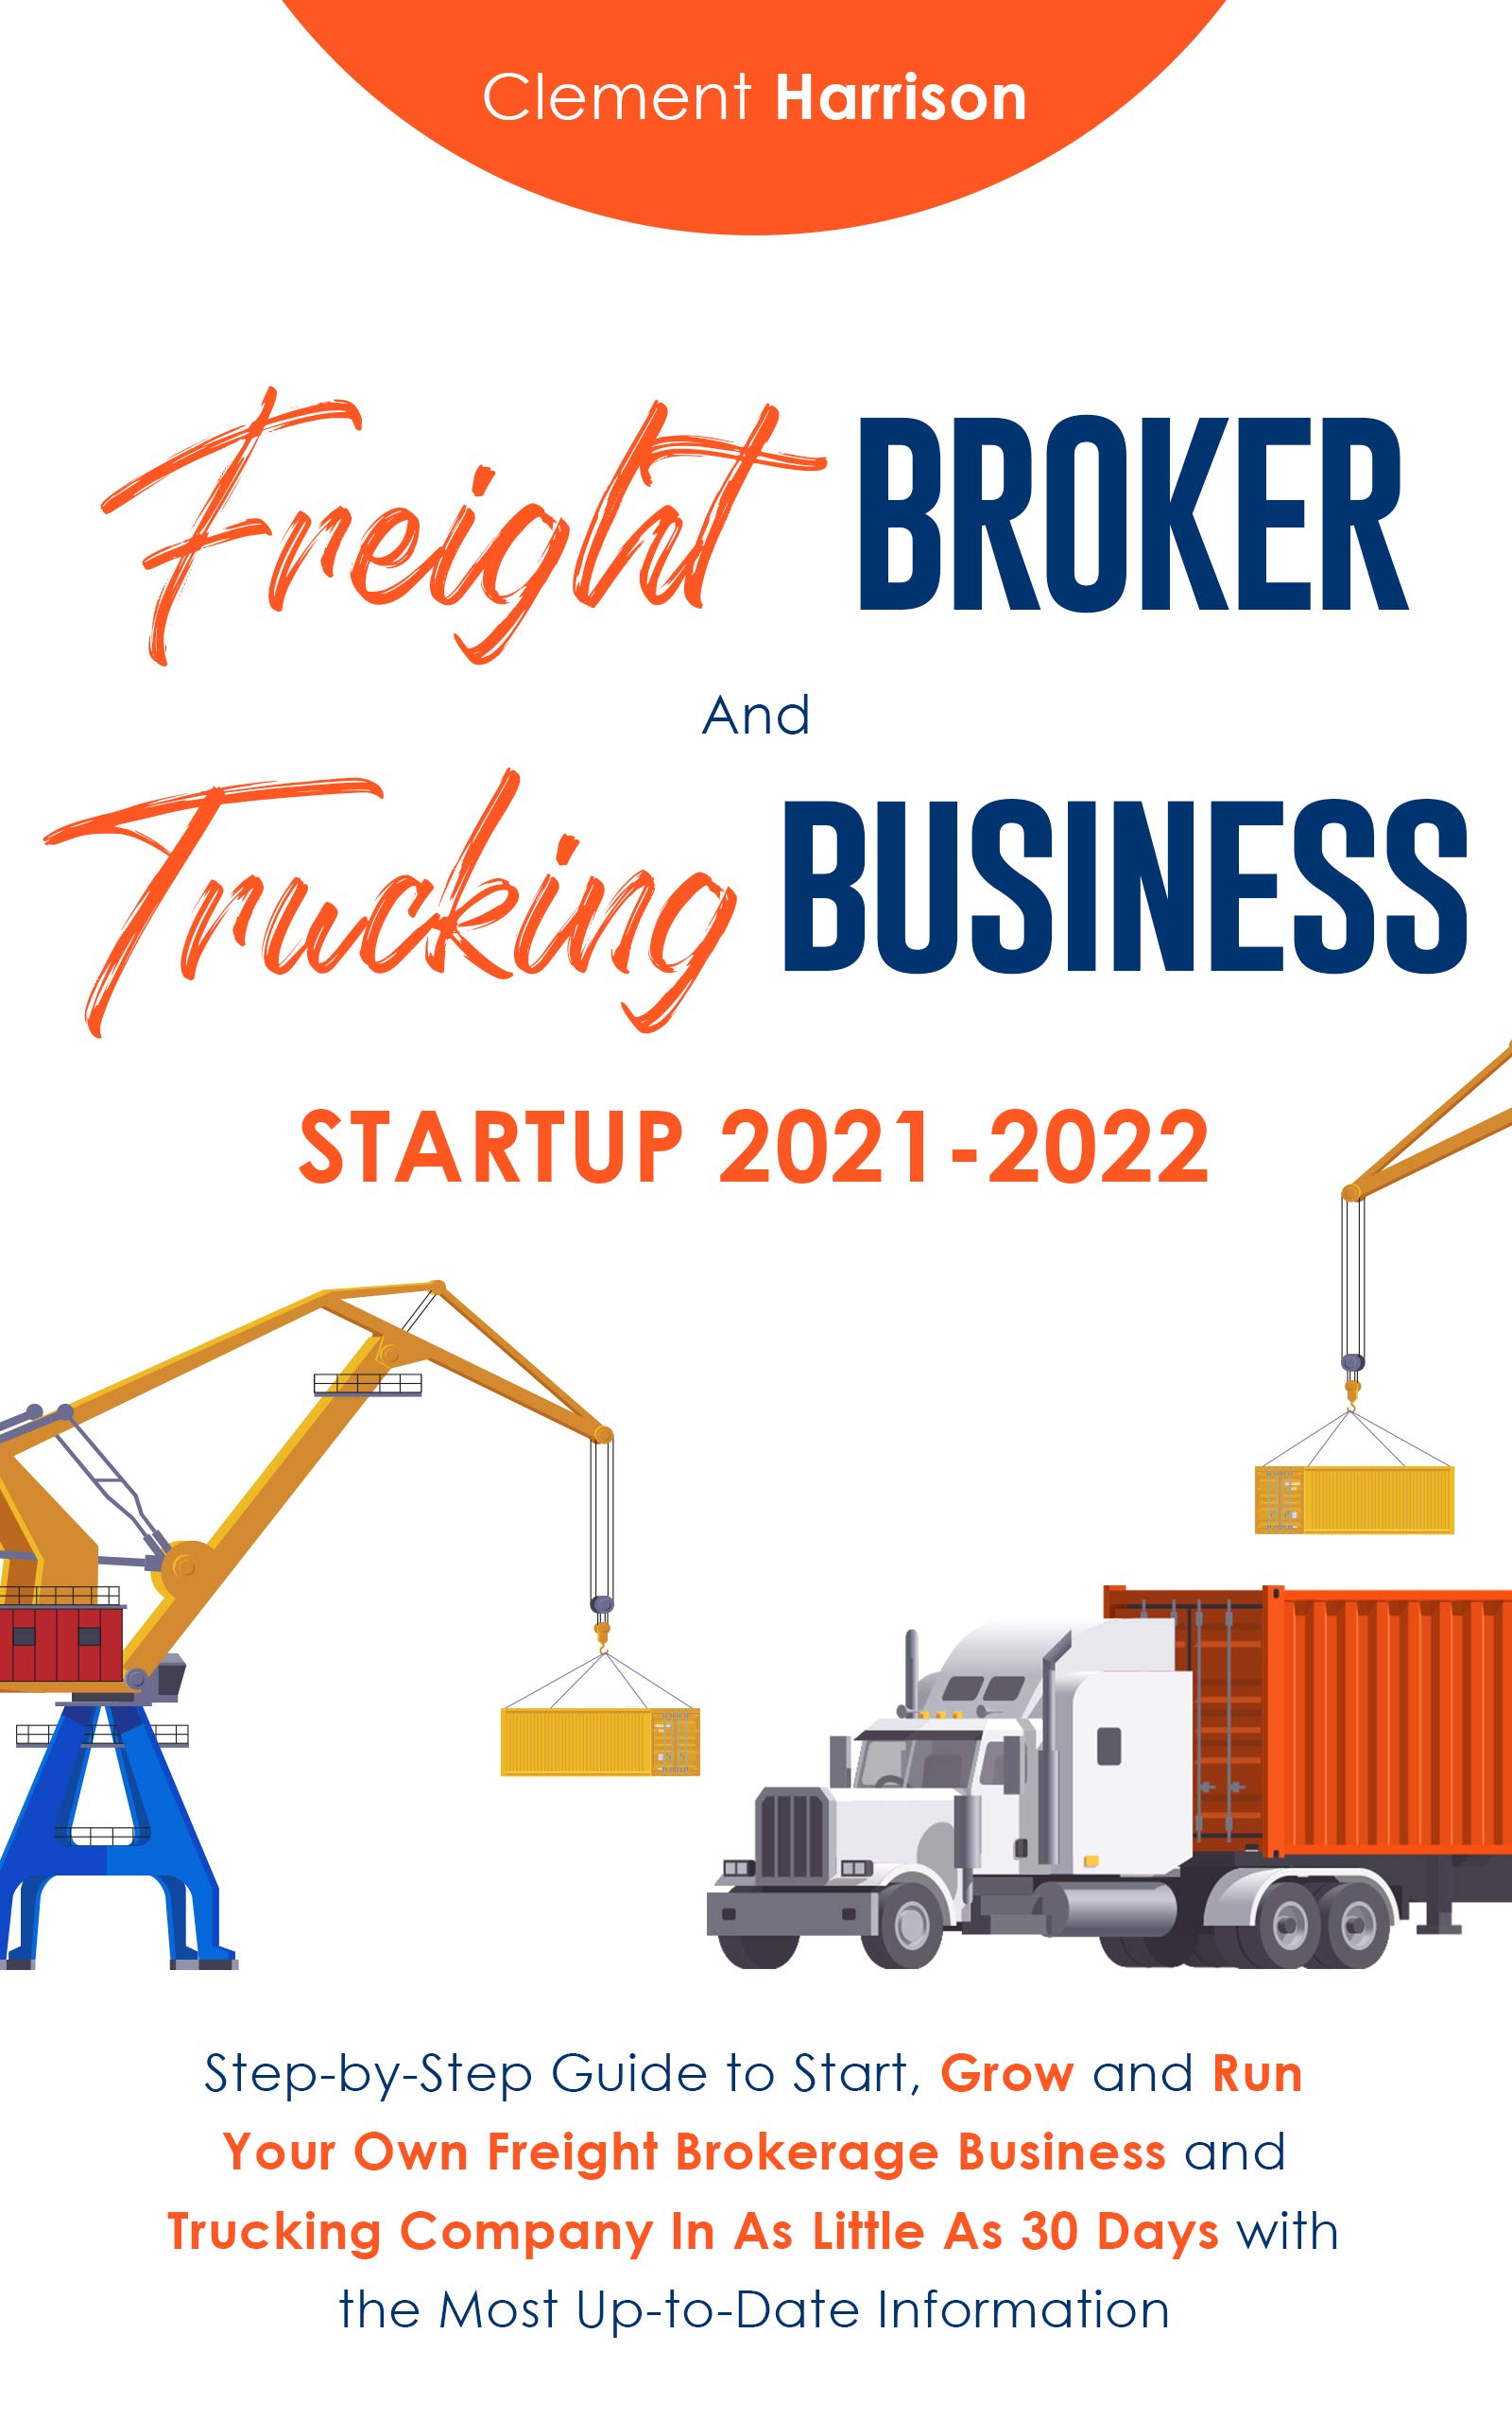 Freight Broker and Trucking Business Startup 2021-2022: How to Start, Grow and Run Your Own Freight Brokerage and Trucking Company In 30 Days with the Most Up-to-Date Information